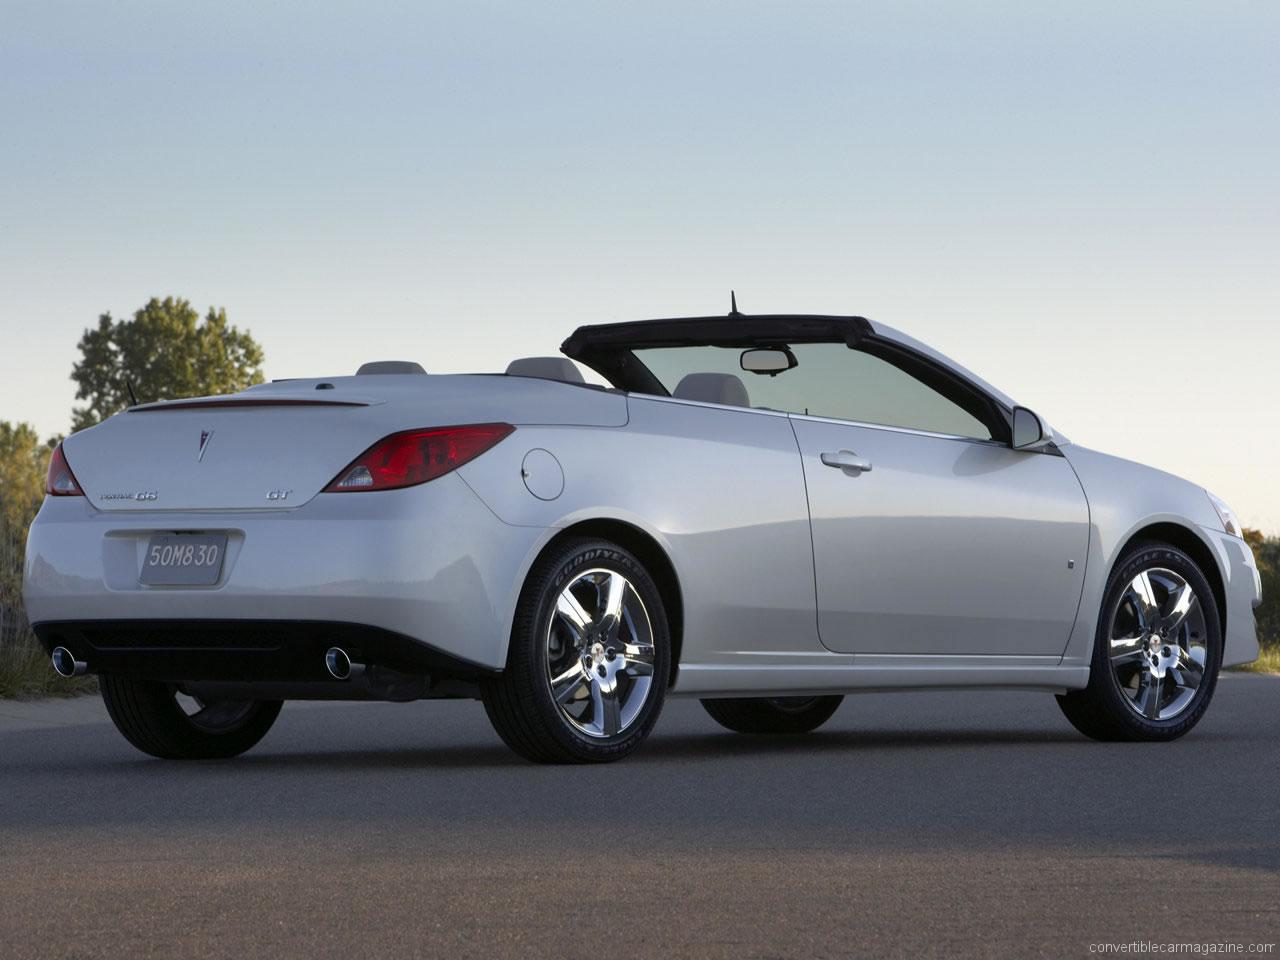 pontiac g6 convertible buying guide. Black Bedroom Furniture Sets. Home Design Ideas